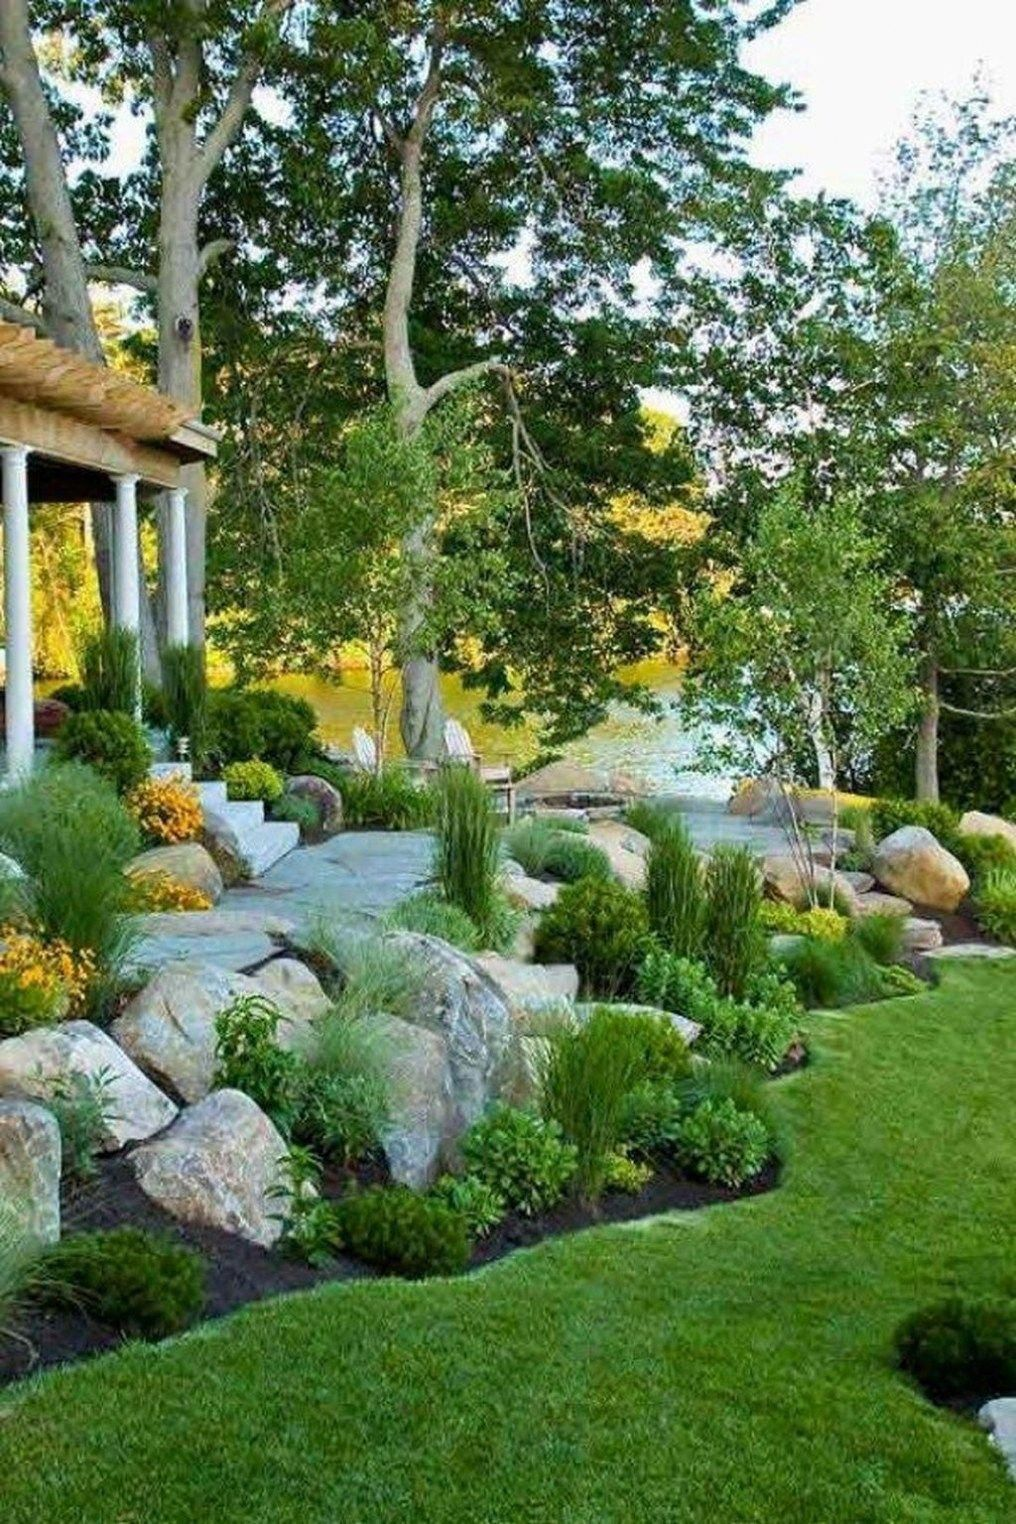 The Best Rock Garden Landscaping Ideas To Make A Beautiful Front